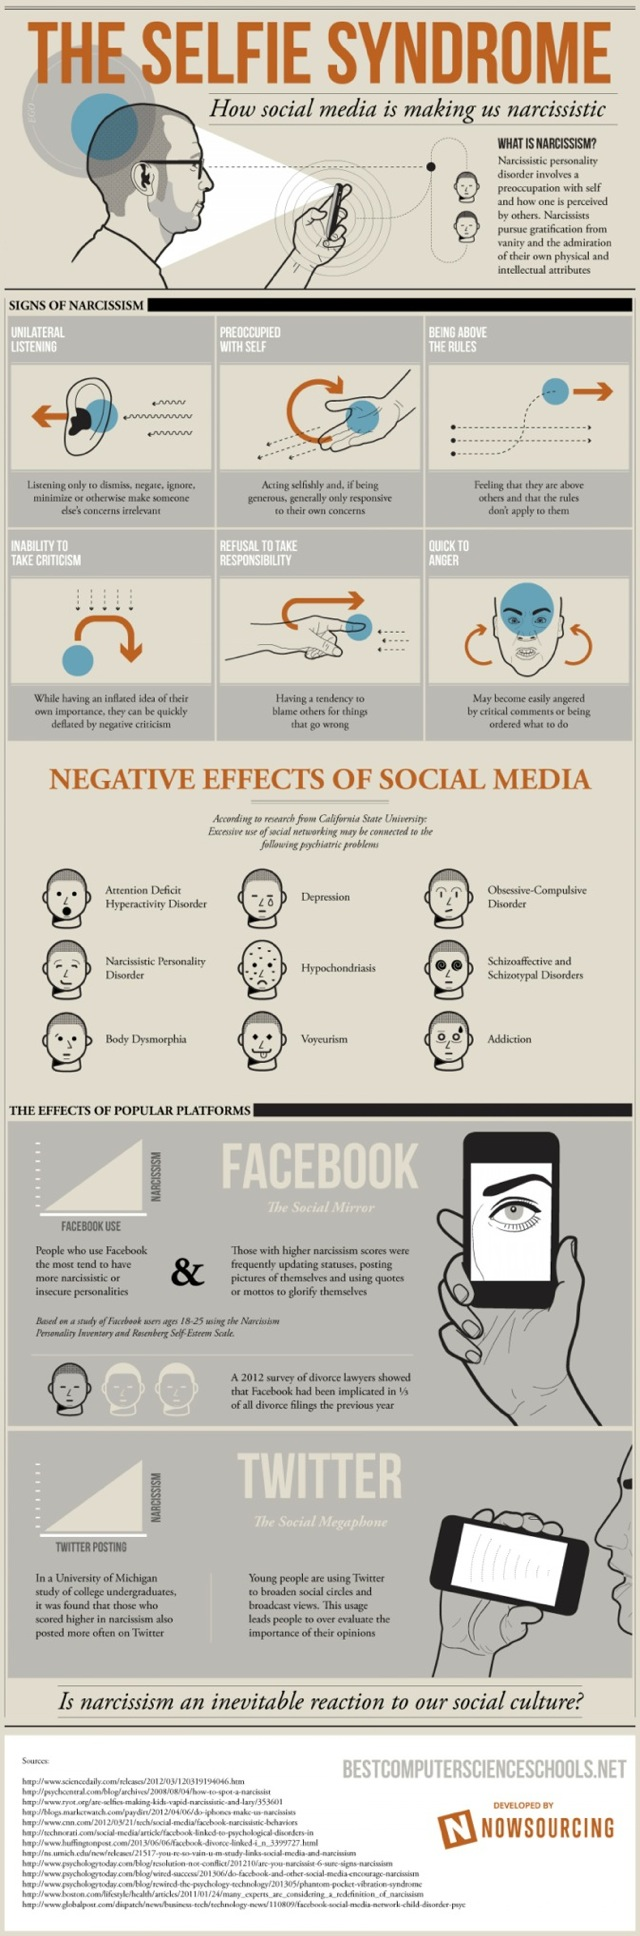 Selfie syndrome infographic